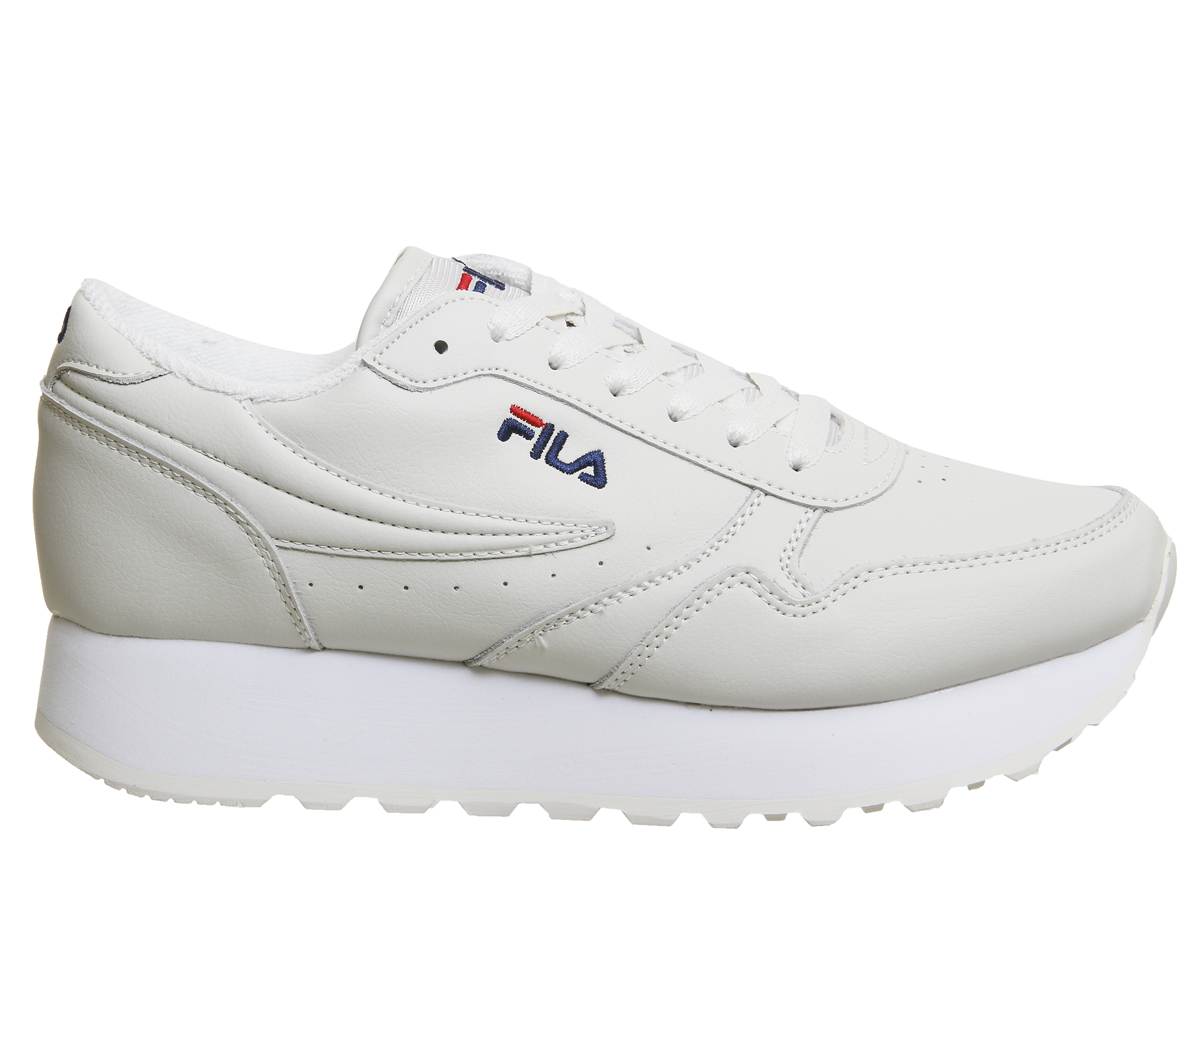 2ef194ac9655 Sentinel Womens Fila Orbit Zeppa Trainers TURTLEDOVE Trainers Shoes